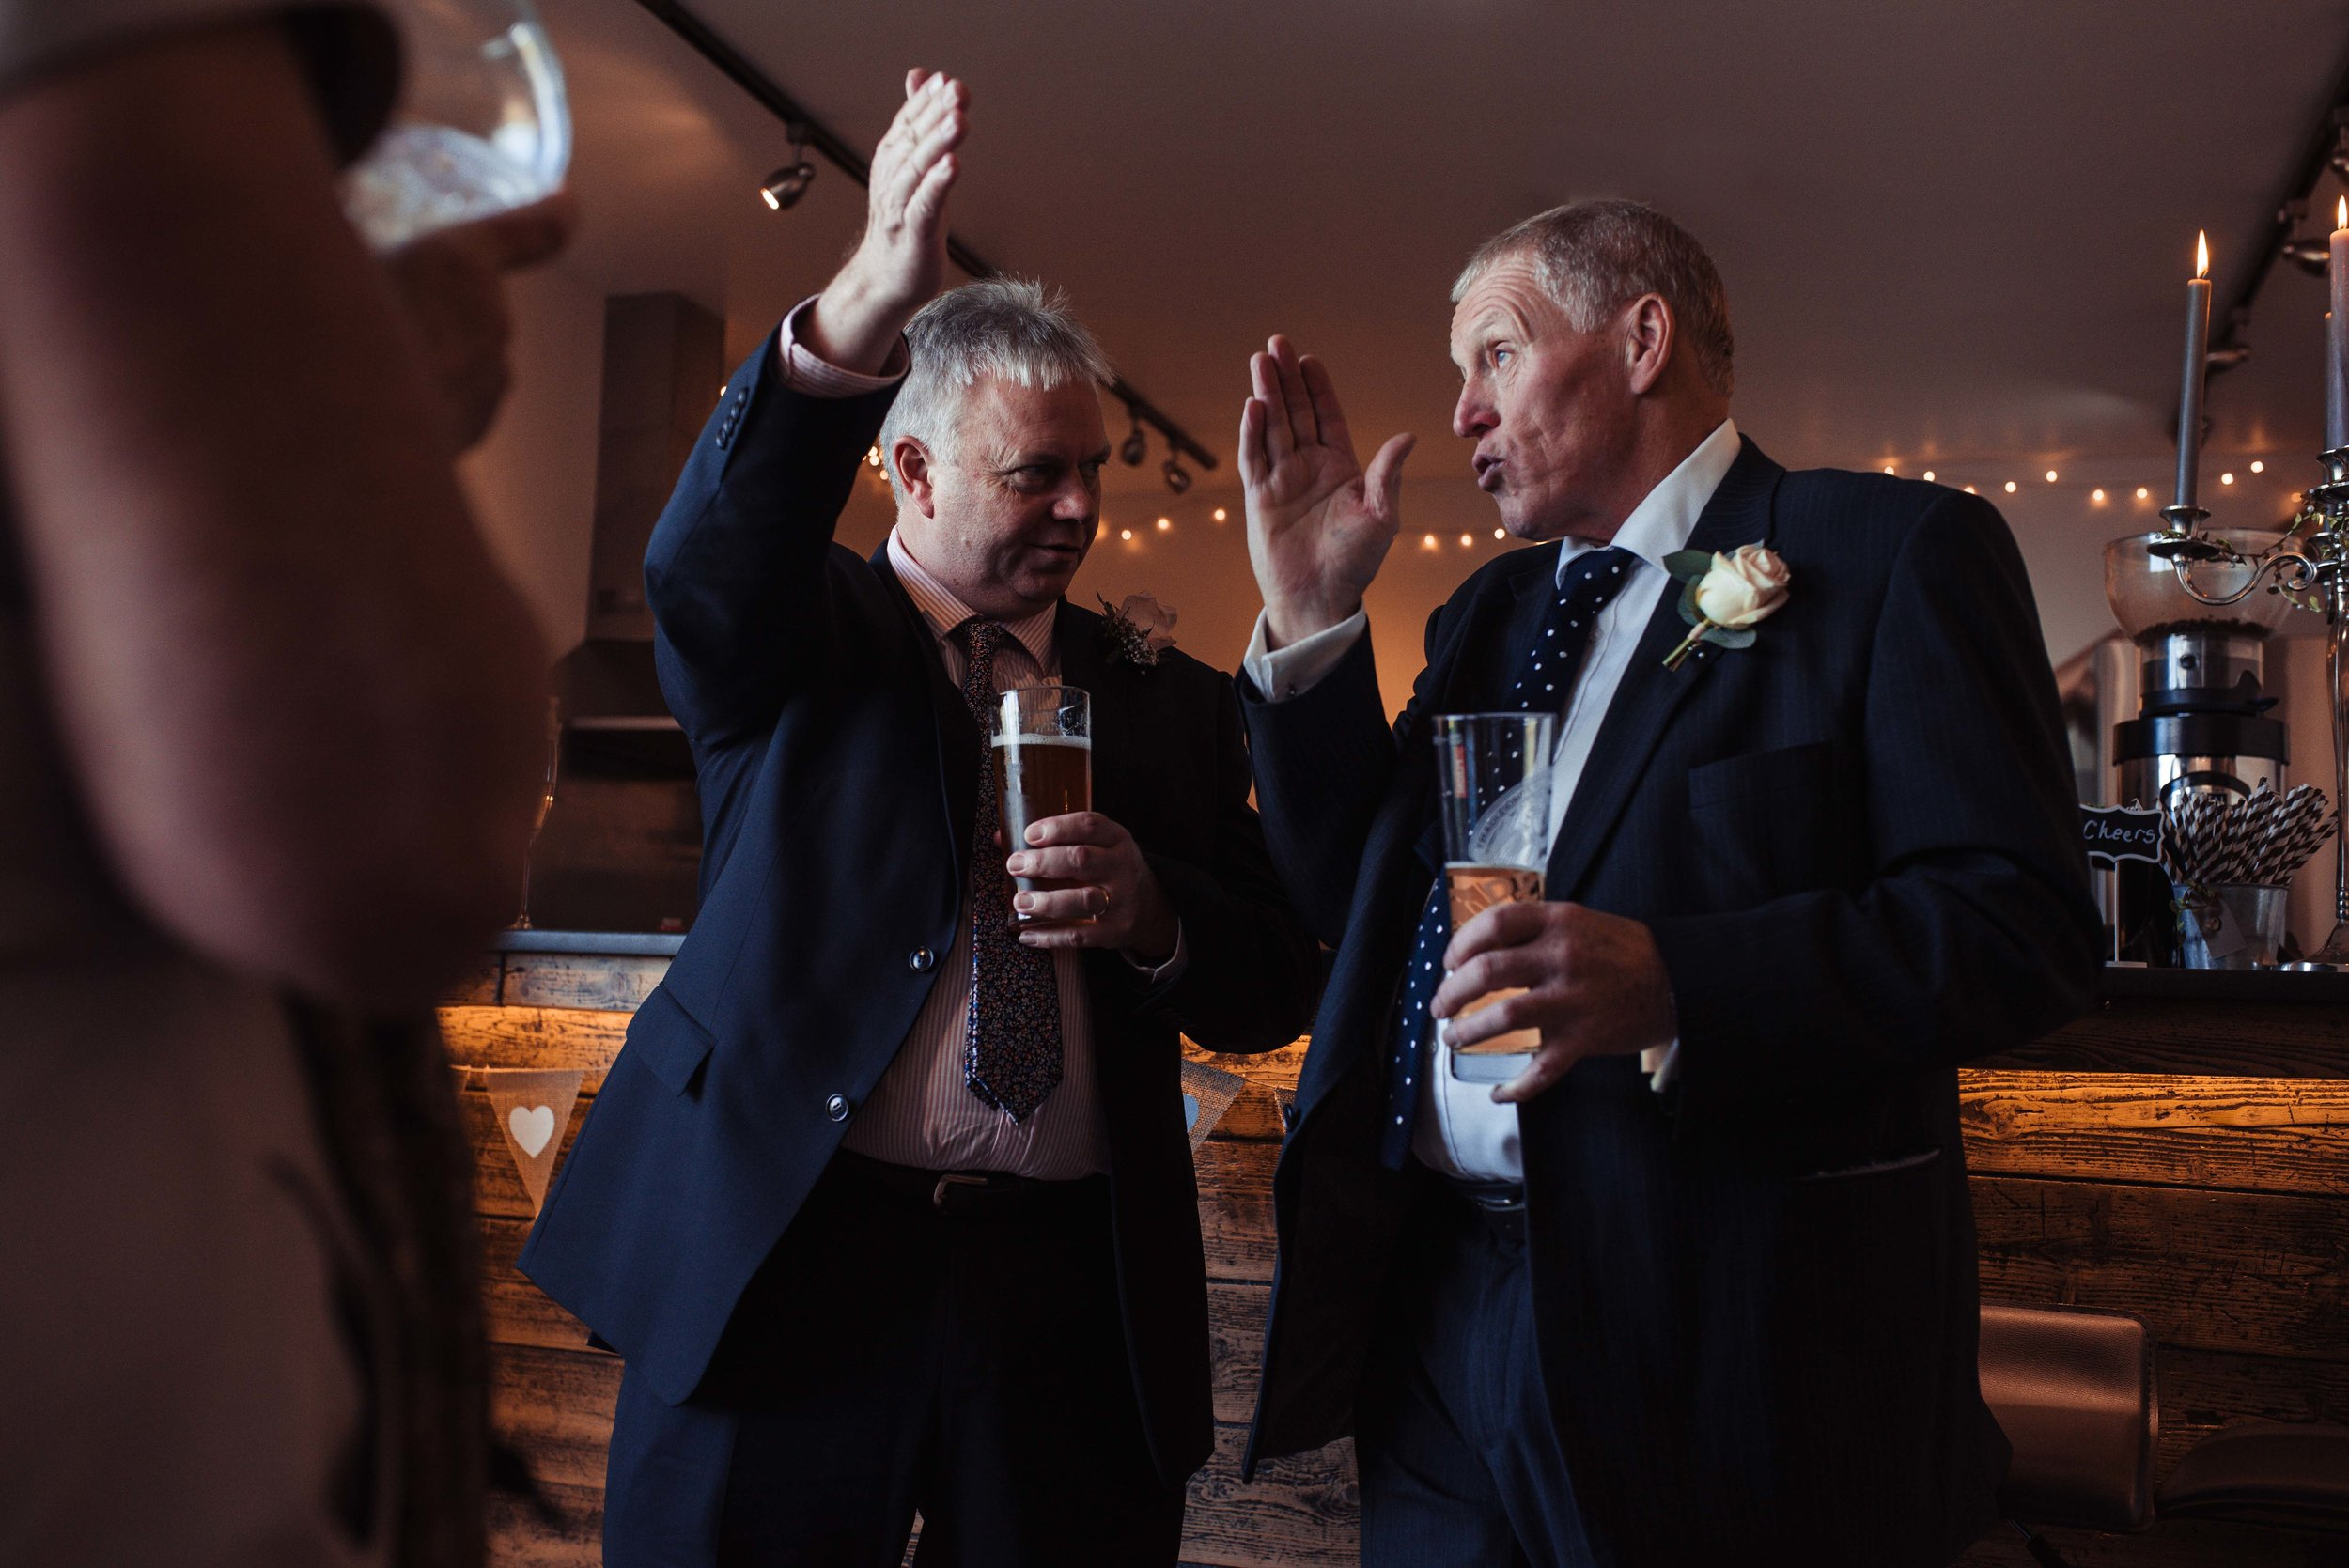 Two wedding guests standing at the bar use hand signals